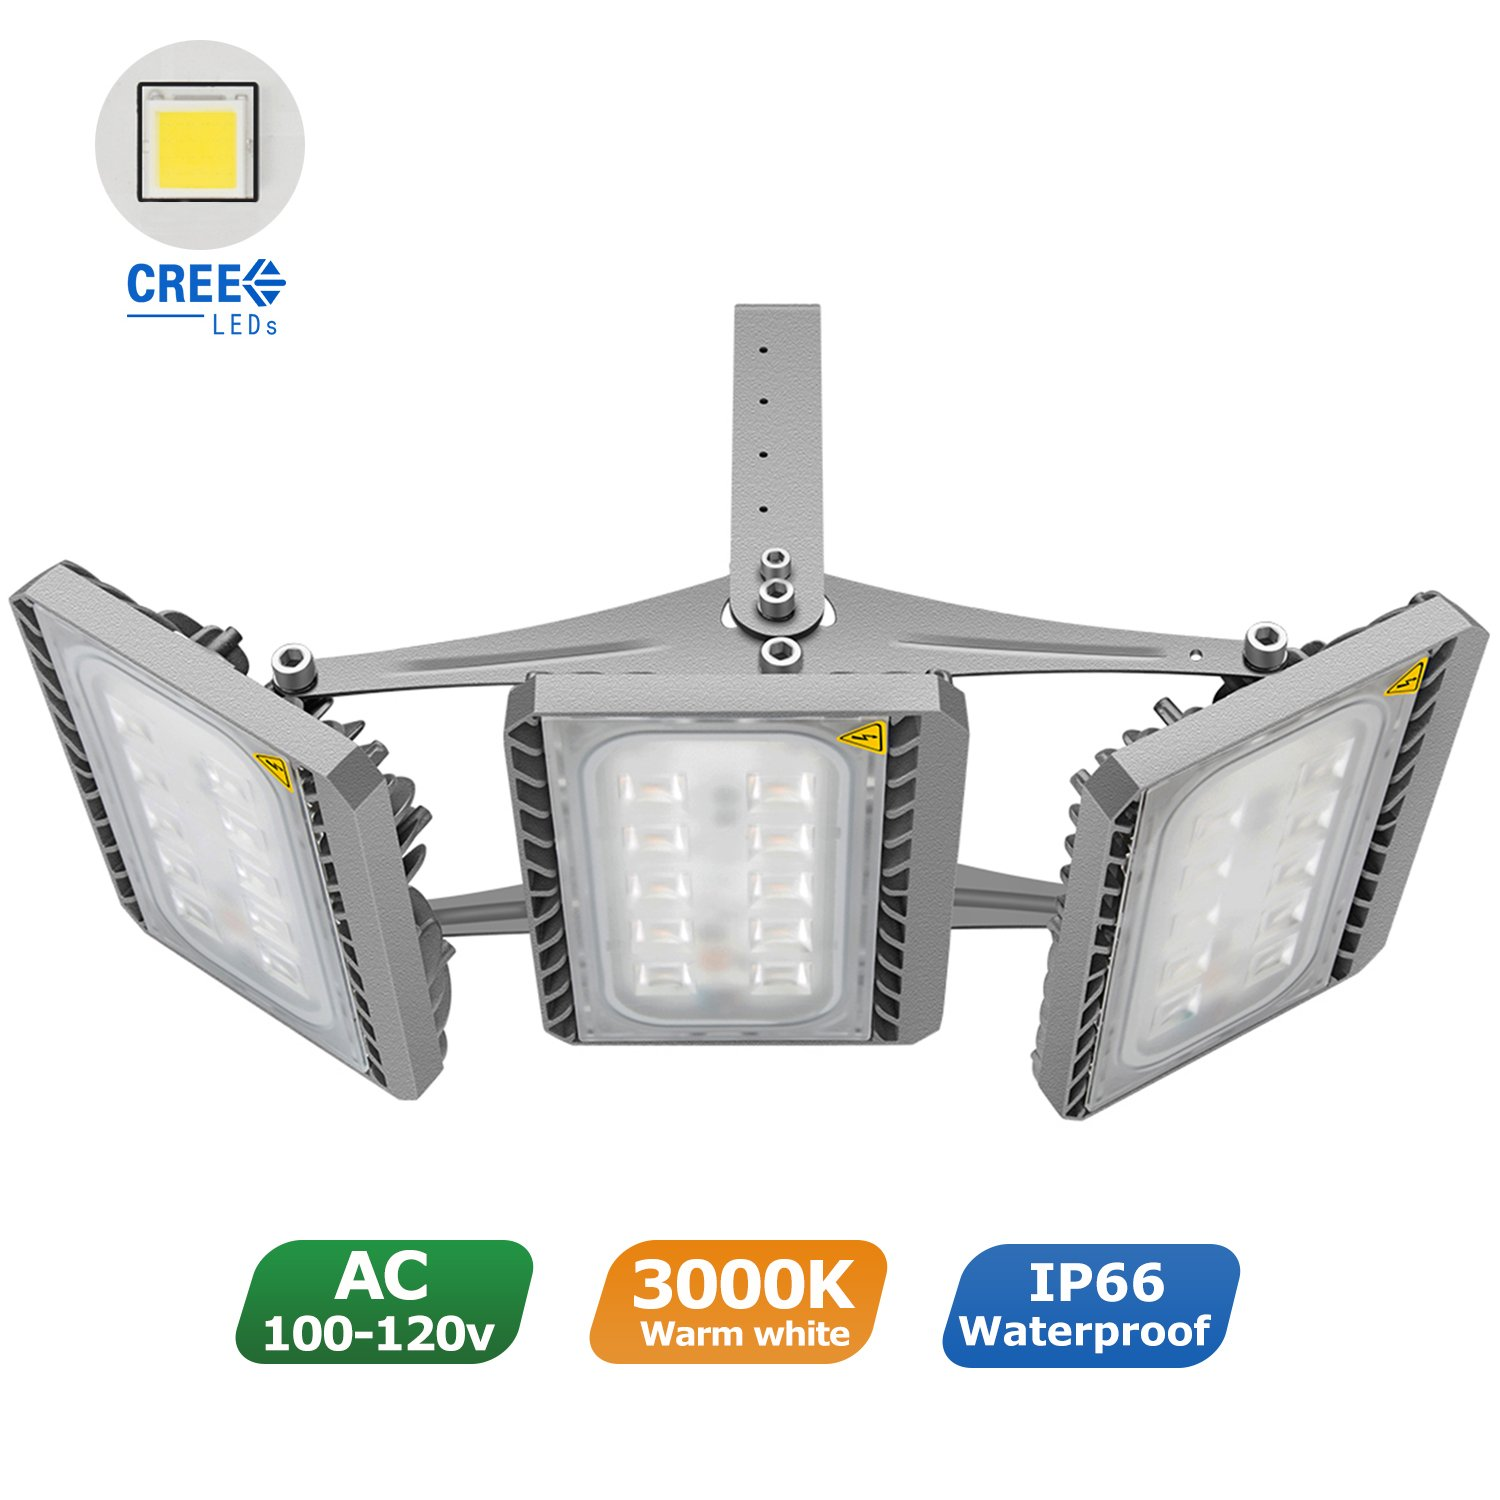 LED Flood Light Outdoor STASUN 150W 13500lm LED Security Lights with Wider Lighting Area ...  sc 1 st  Amzn.promo & LED Flood Light Outdoor STASUN 150W 13500lm LED Security Lights ...